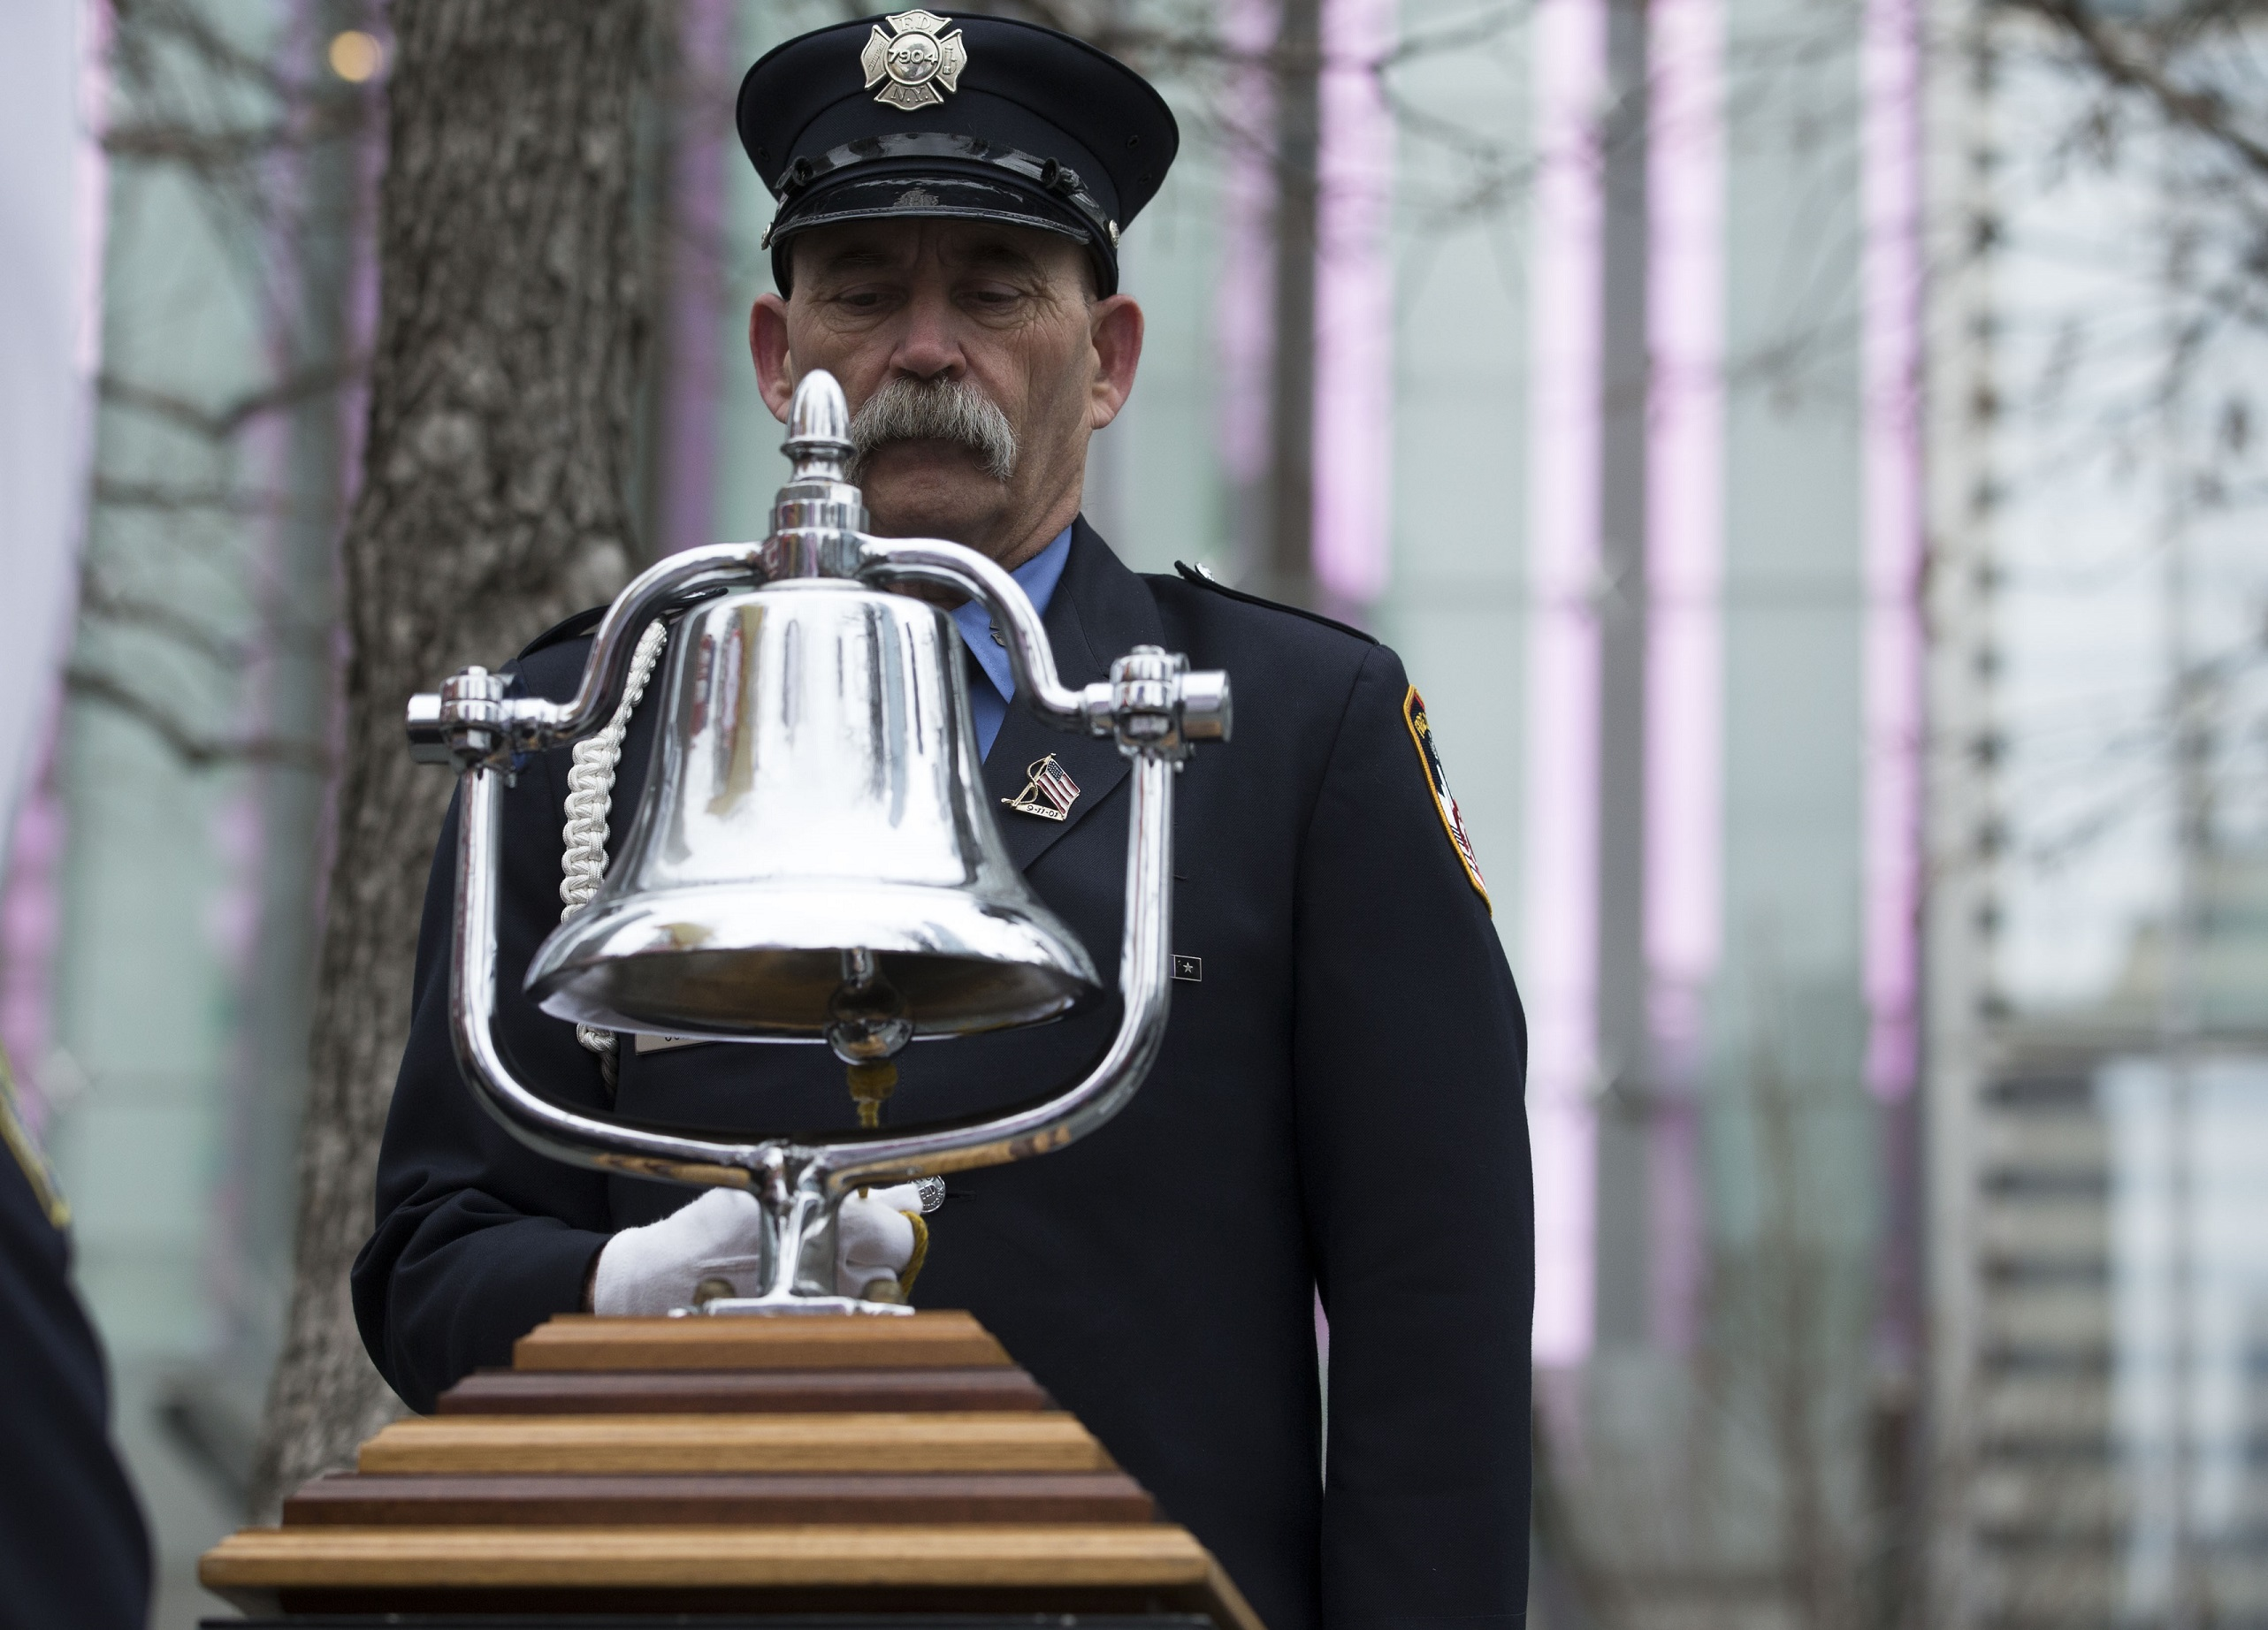 A mustachioed firefighter in a formal FDNY outfit rings a silver bell, marking the time the World Trade Center was bombed on February 26, 1993.